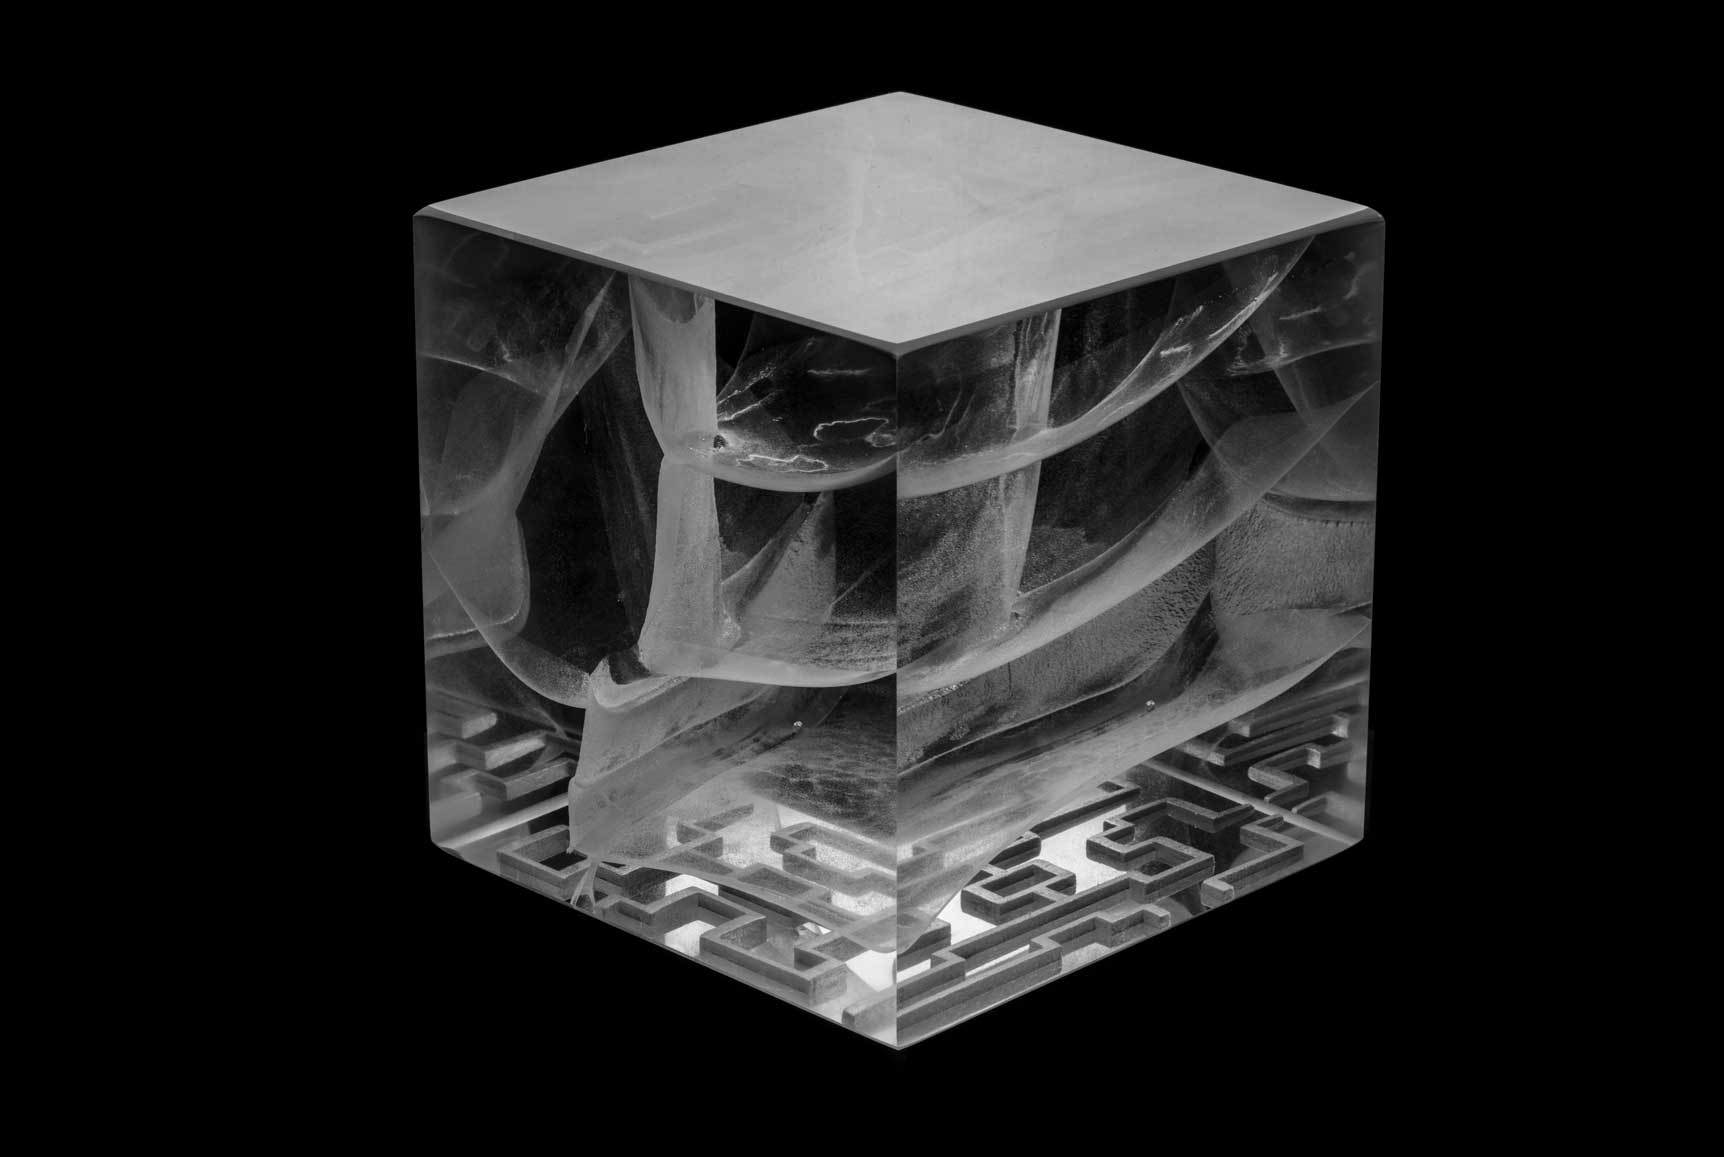 LABYRINTH | Optical glass sculpture by Anna Alsina Bardagi